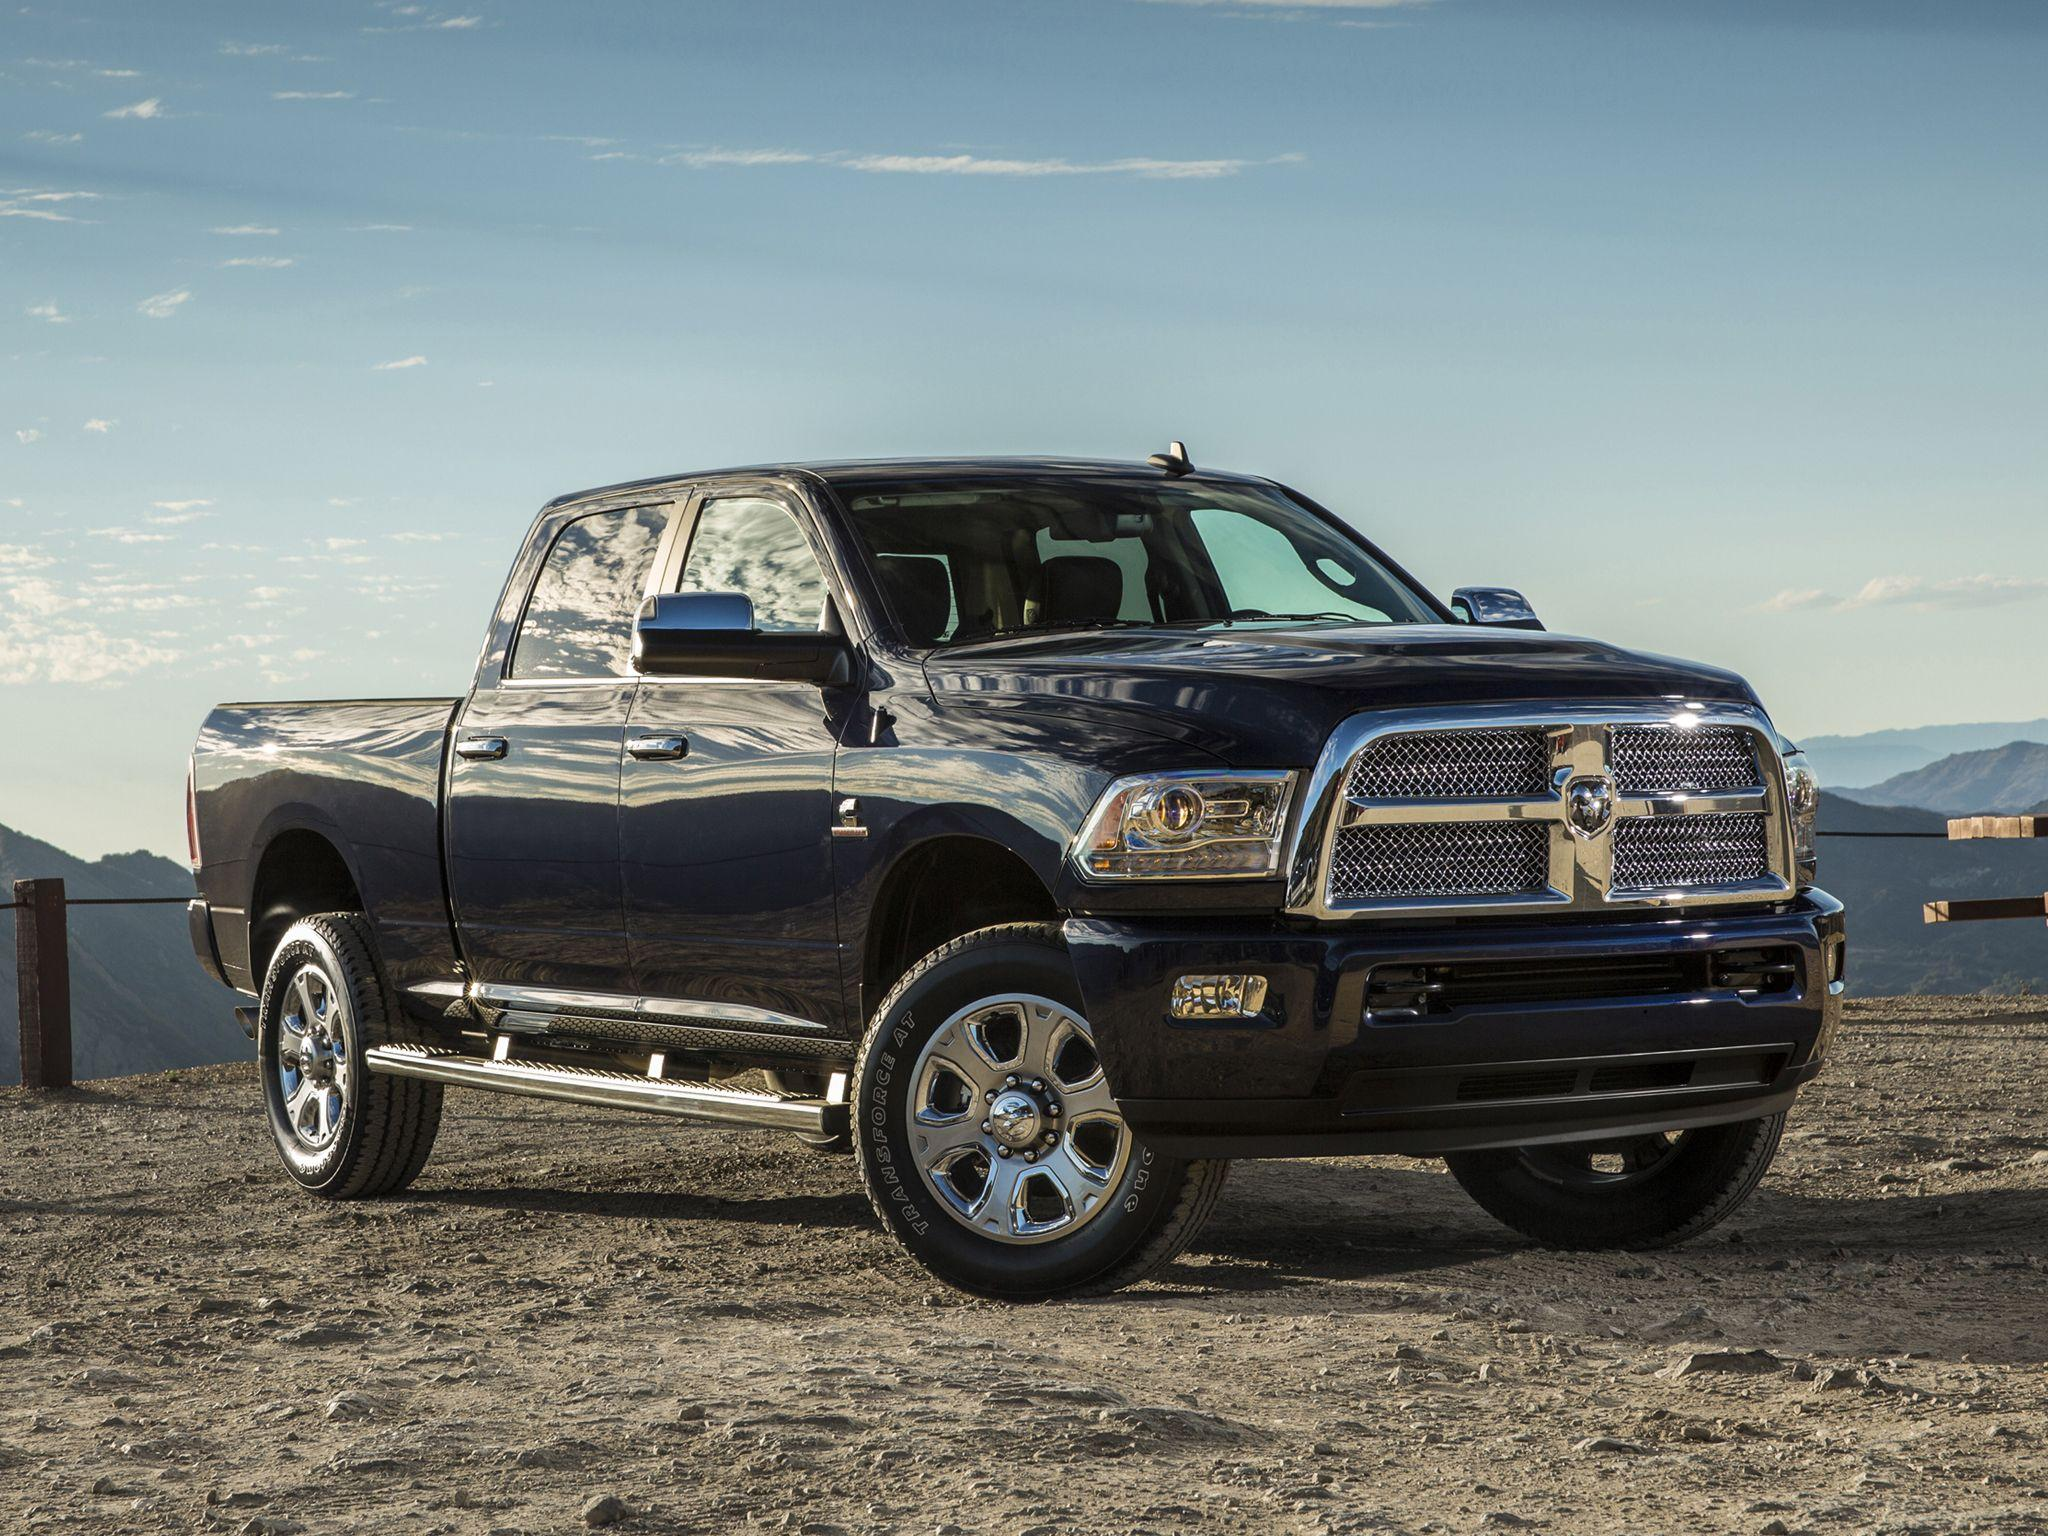 2013 Dodge Ram 2500 Laramie Limited Crew Cab 4x4 pickup d wallpapers